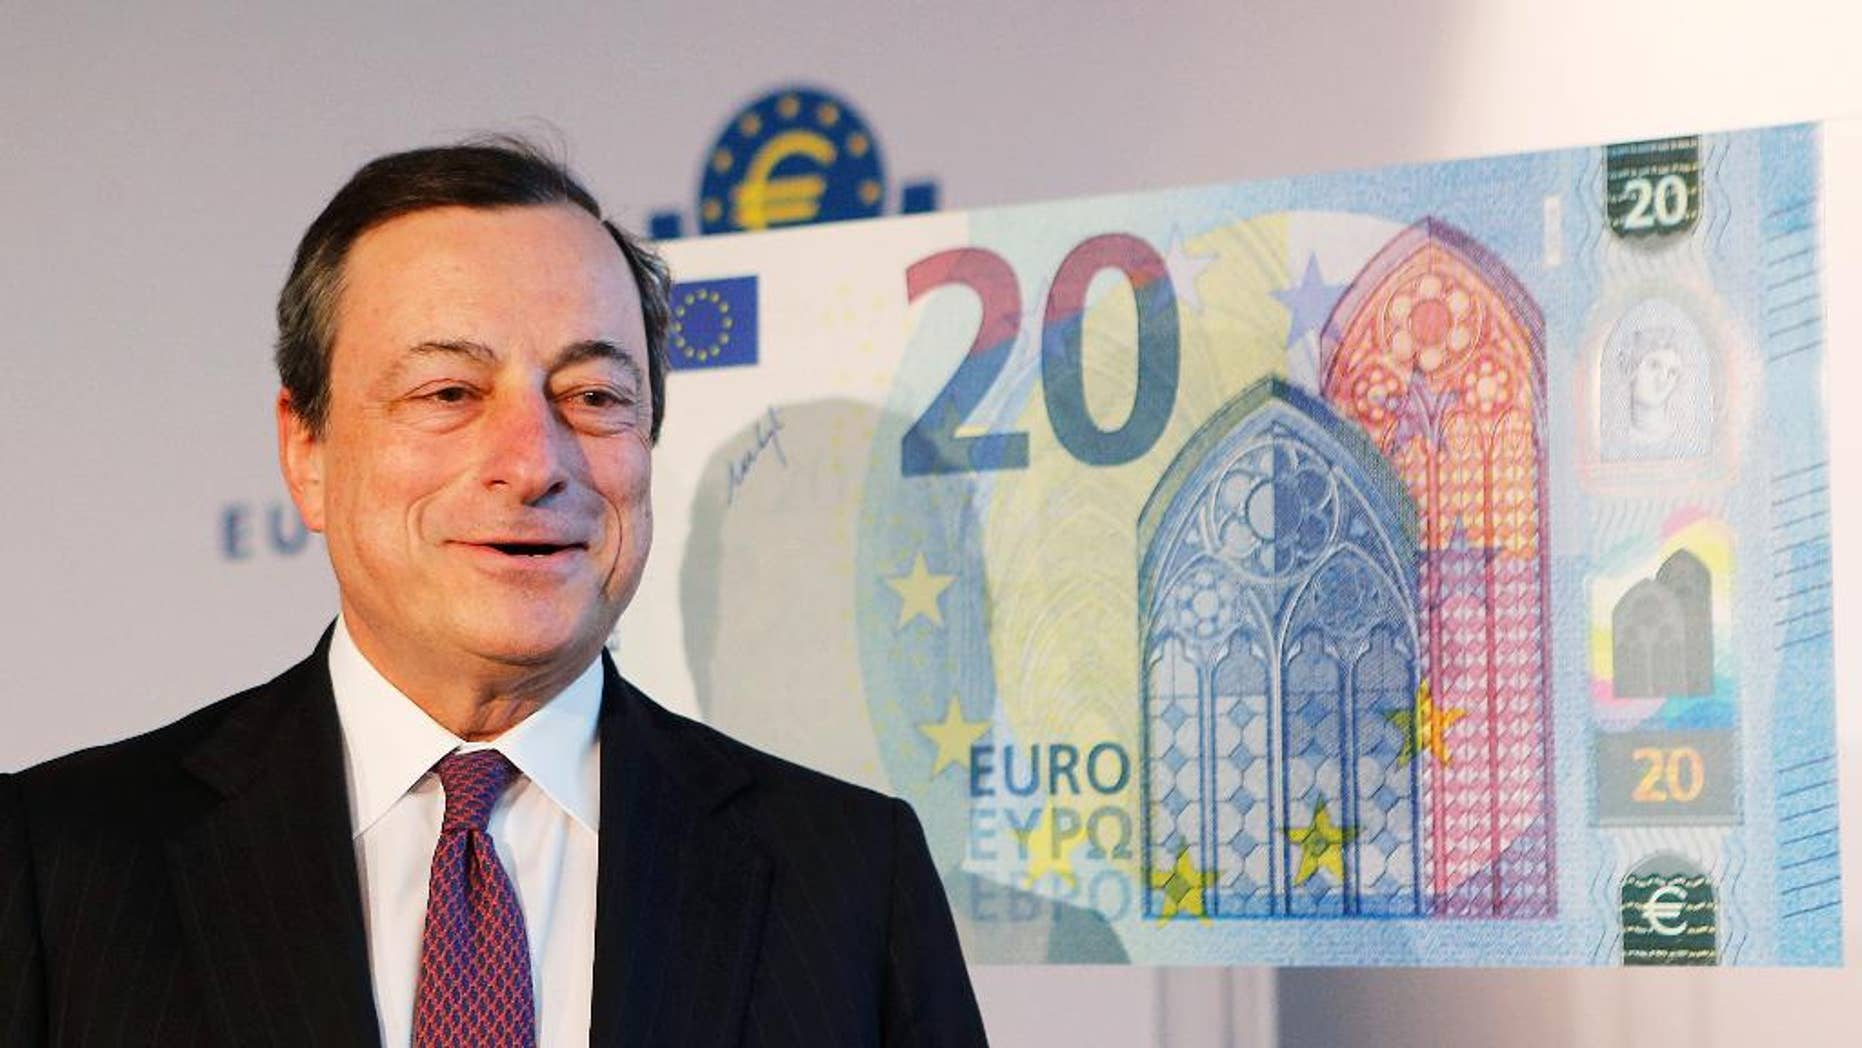 FILE - In this Tuesday, Feb. 24, 2015, file photo, Mario Draghi, president of the European Central Bank, stands next to a facsimile of the new 20 euro banknote in Frankfurt, Germany. Analysts are already talking about when and how the European Central Bank might extend its 1.1 trillion euro ($1.2 trillion) stimulus program that has been running for the past six months in an attempt to boost the modest recovery in the 19 countries that use the euro. (AP Photo/Michael Probst, File)